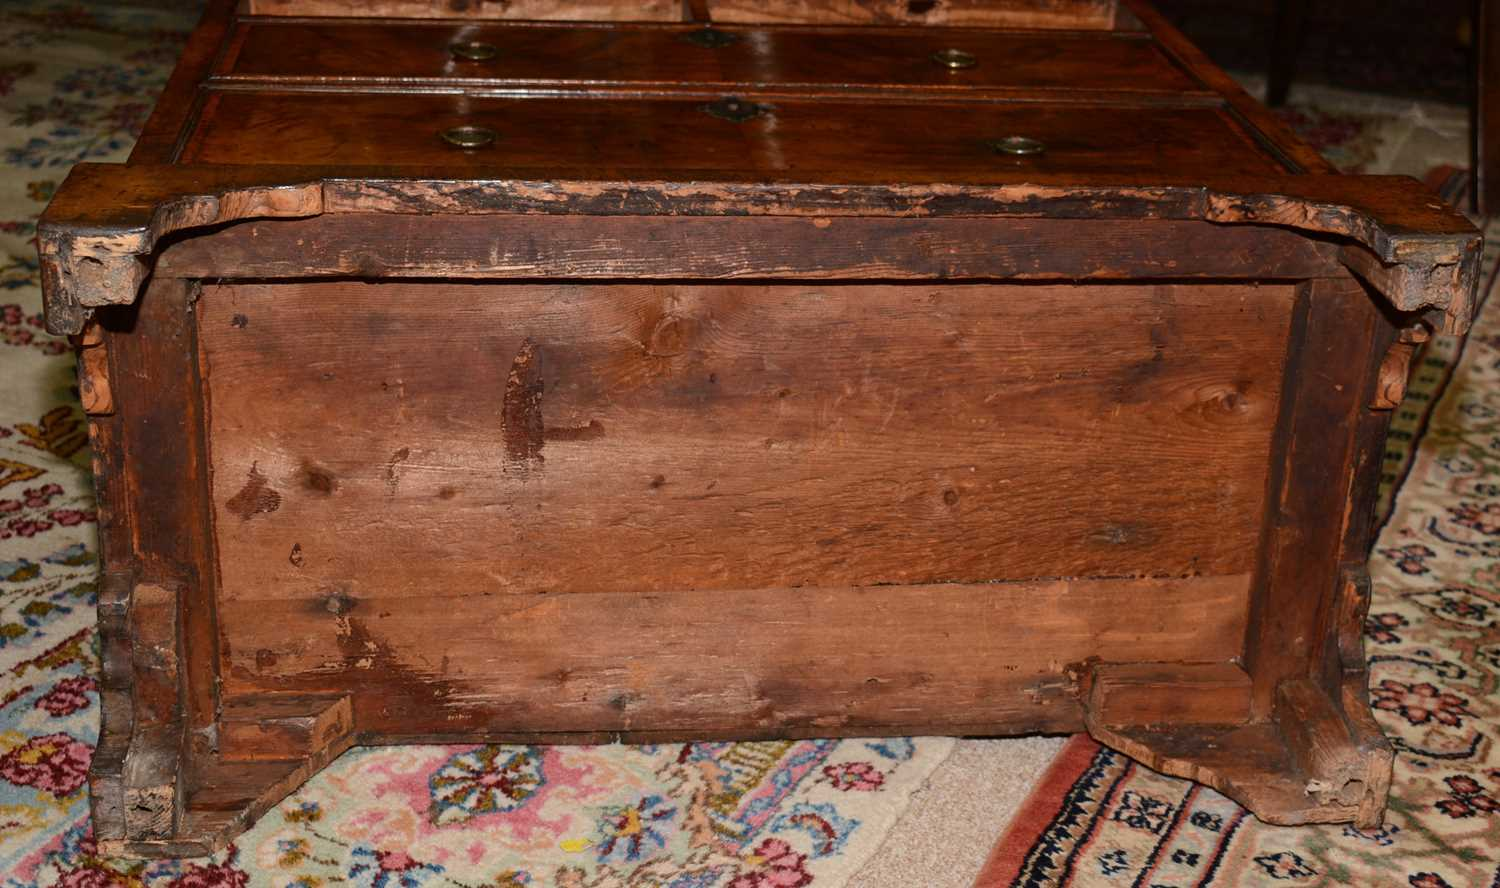 Early 18th Century walnut bachelors chest - Image 22 of 39